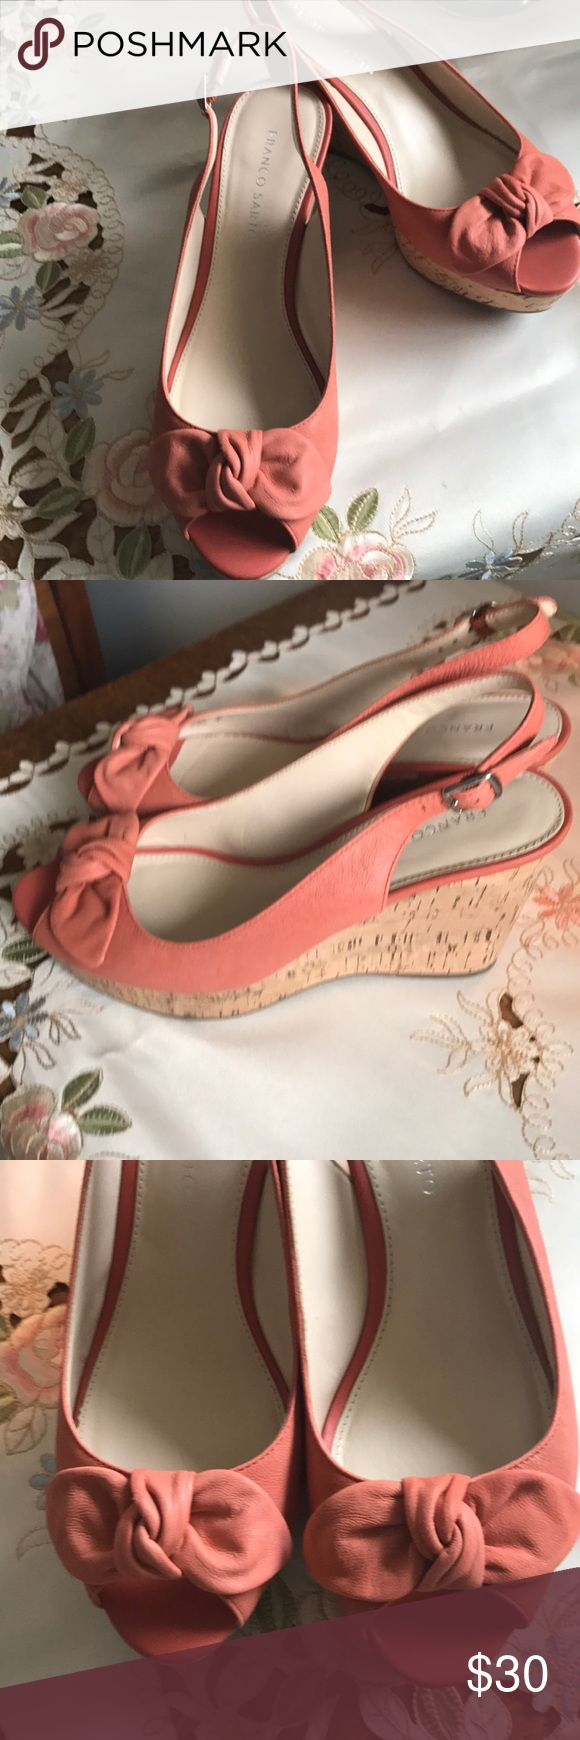 """Franco Sarto cork wedges with pee toe, size 9. Very sweet corked wedge 3"""", attached bow at toe, peep toe, EUC, dark peach color. Comfortable. Size 9, Franco Sarto. Franco Sarto Shoes Wedges"""